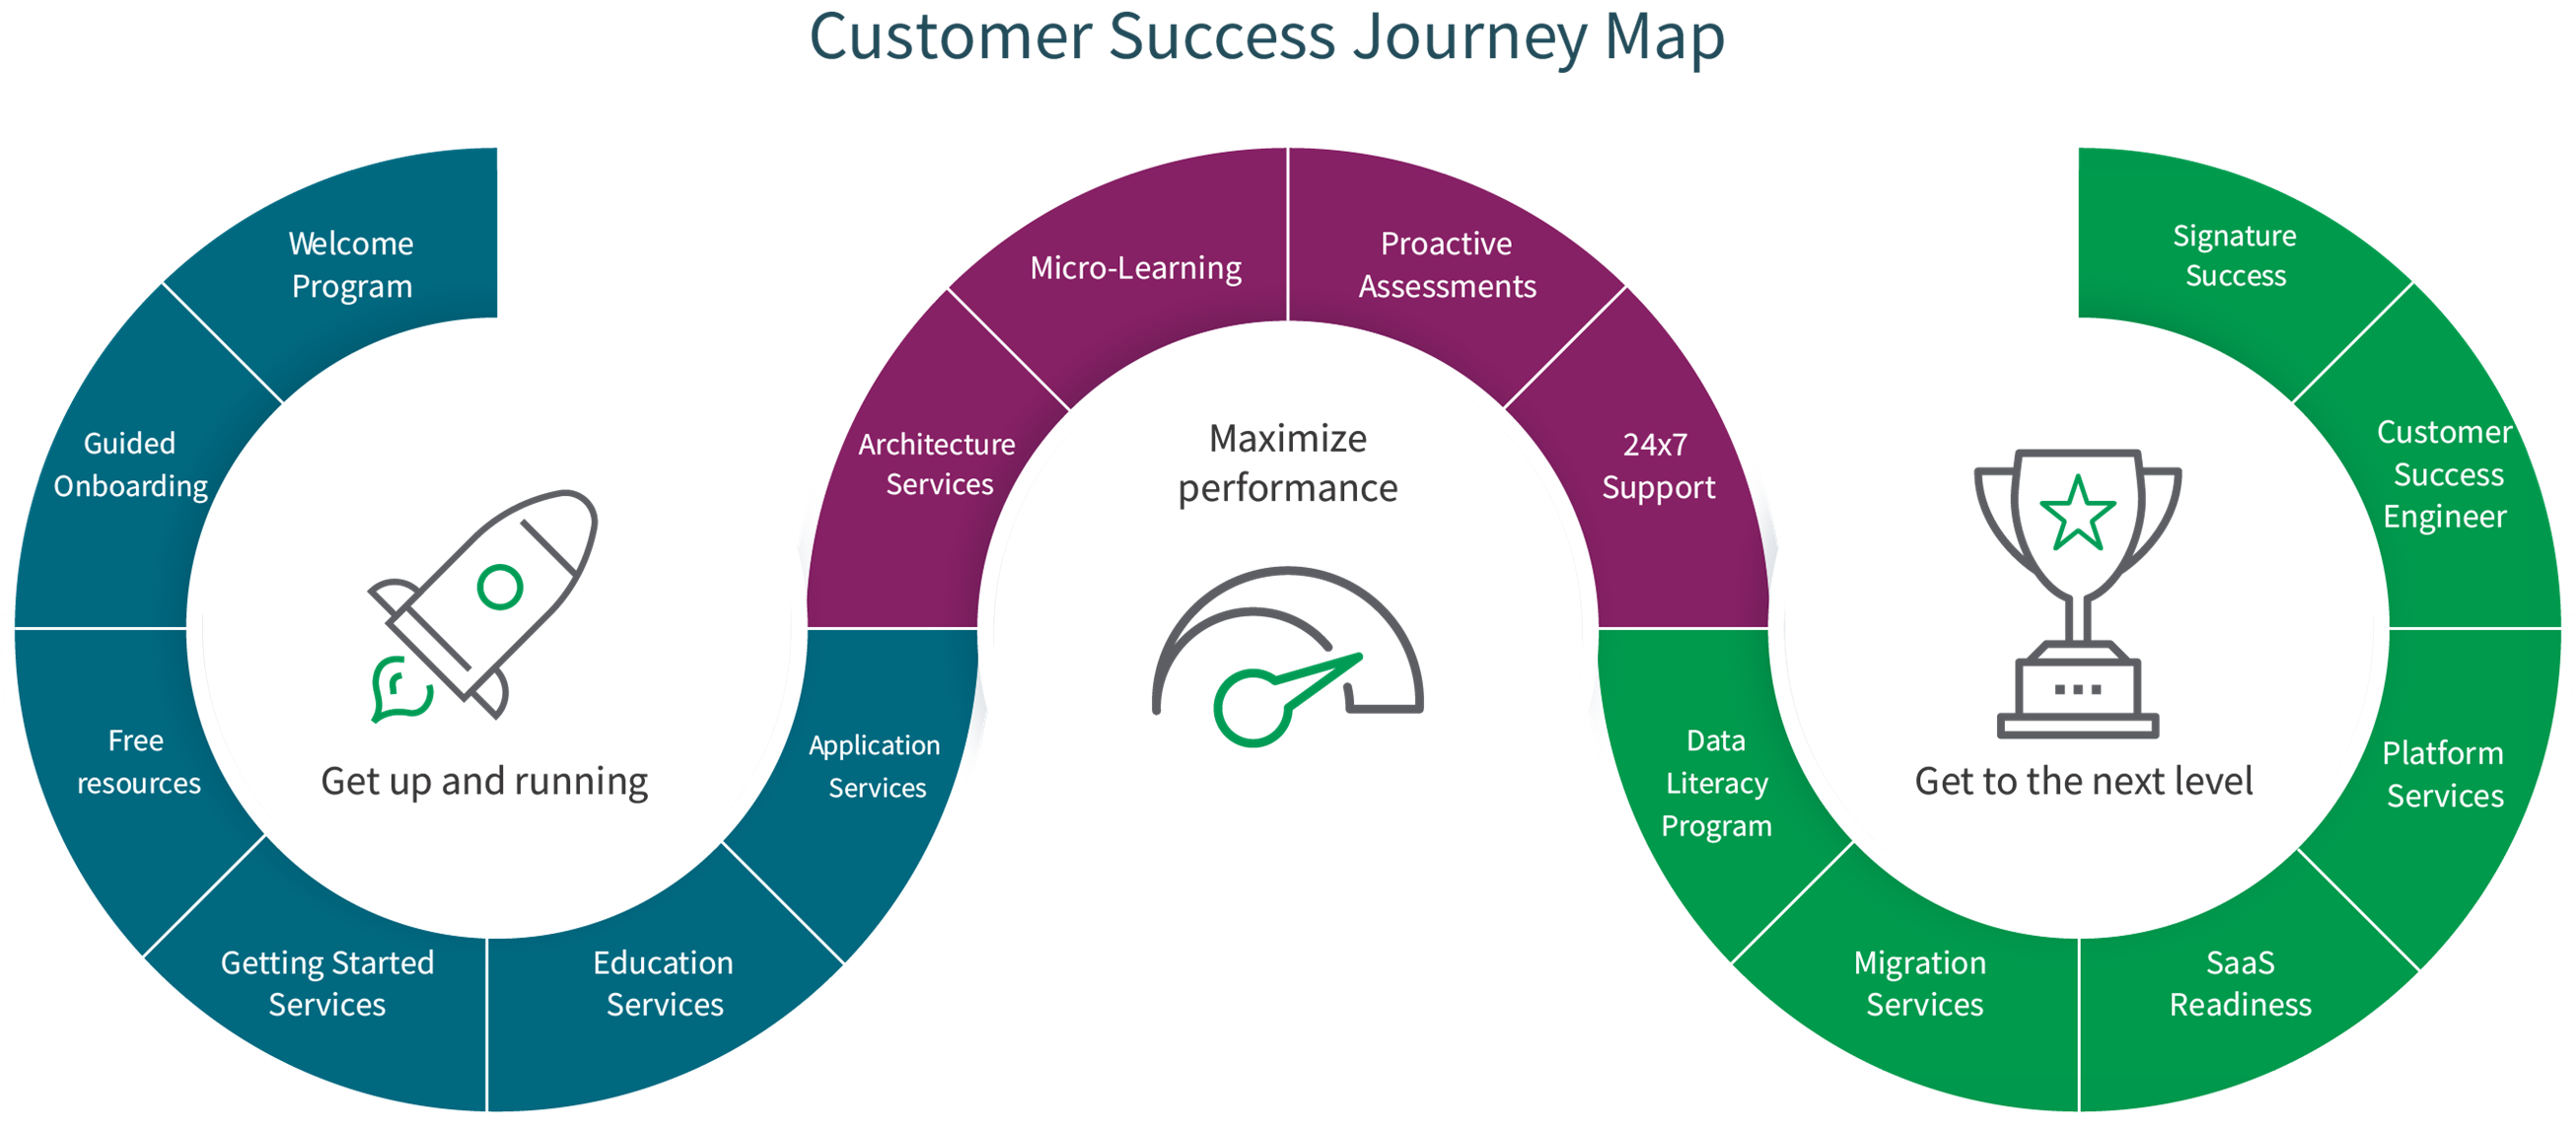 Graphic shows support services and resources throughout a customer engagement from onboarding to support and consulting.